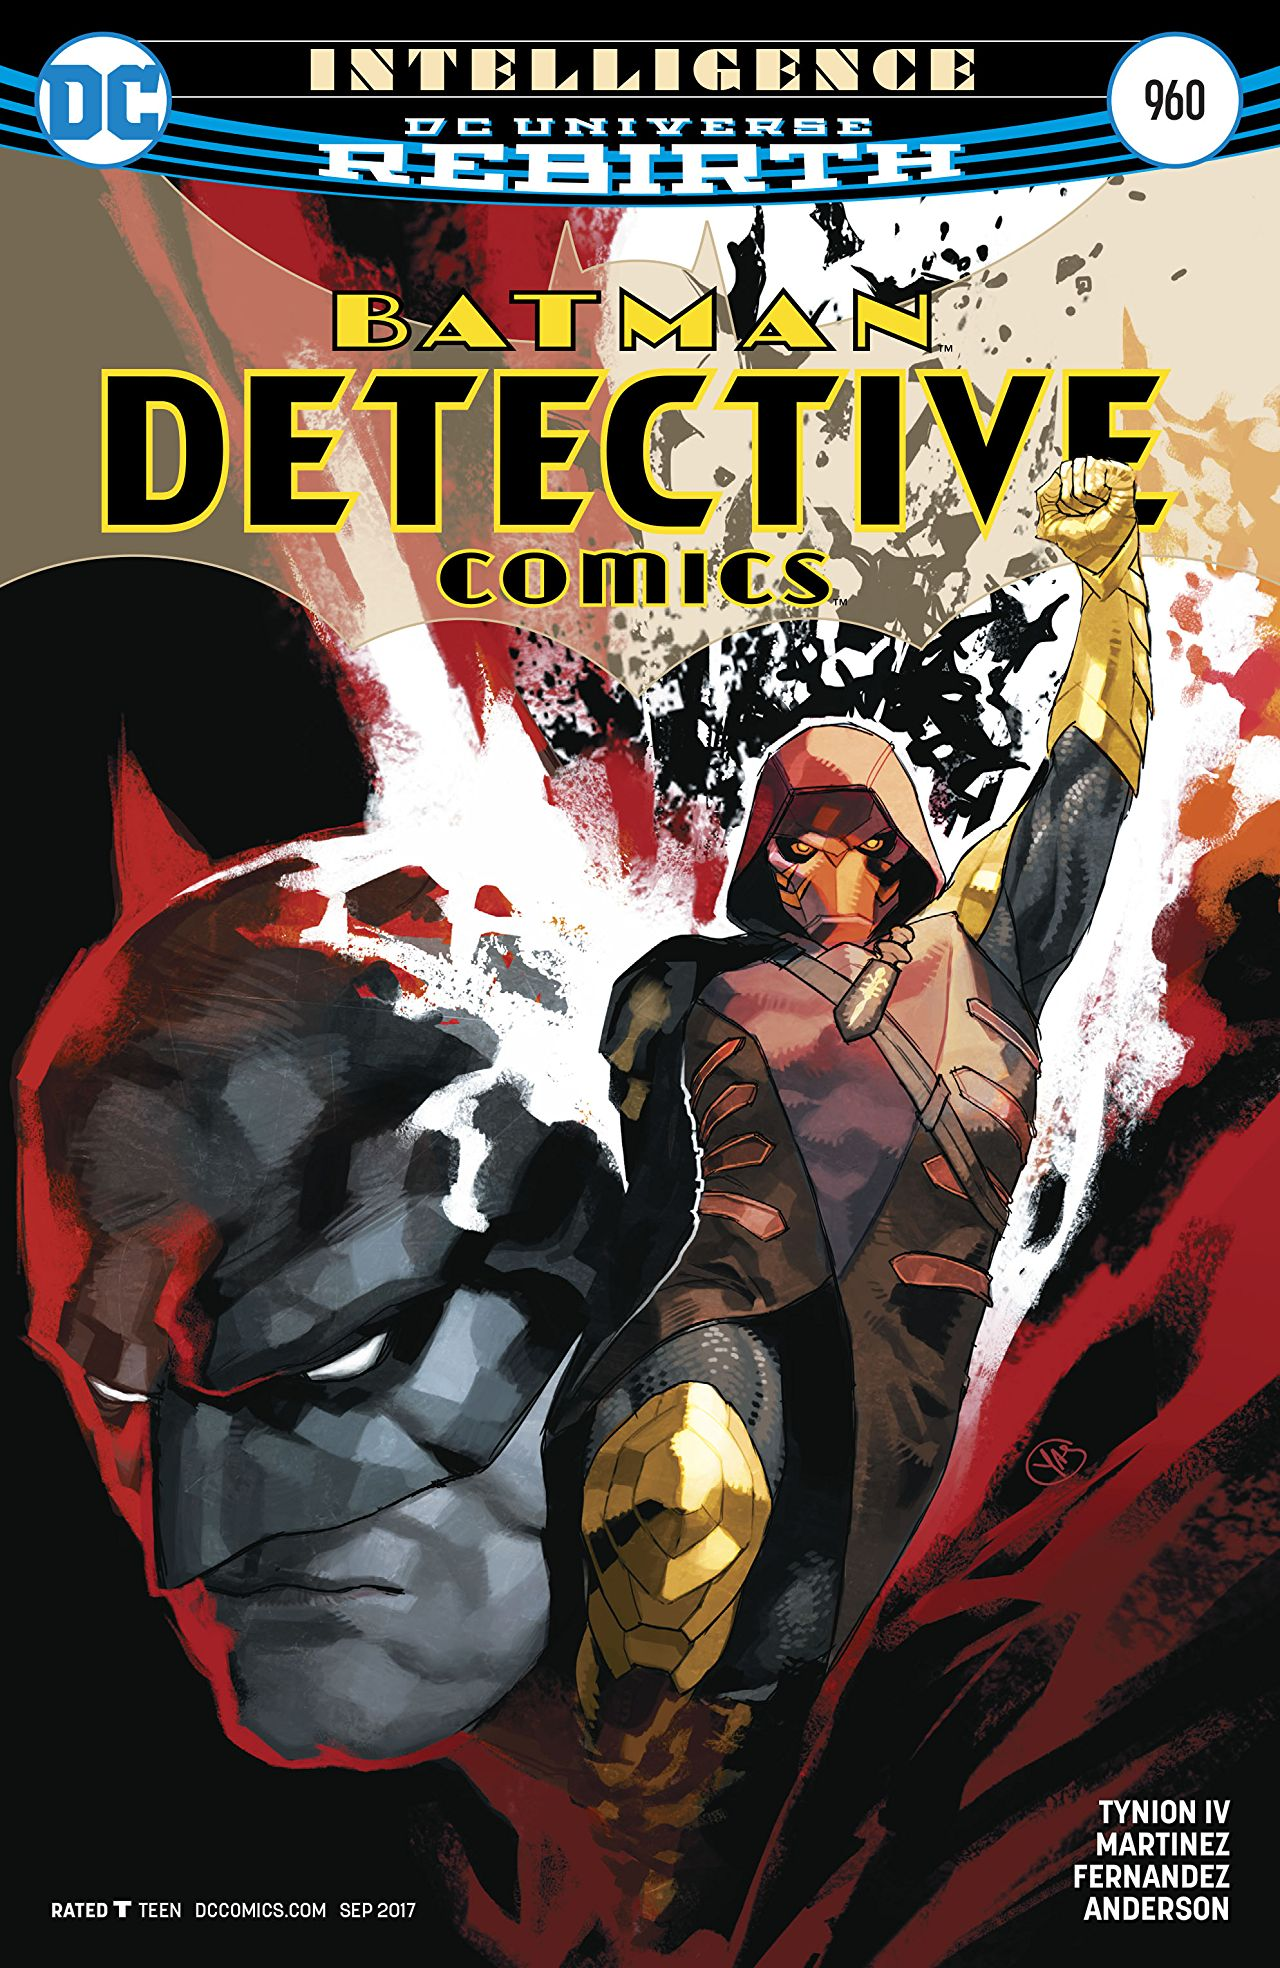 review DETECTIVE COMICS #960